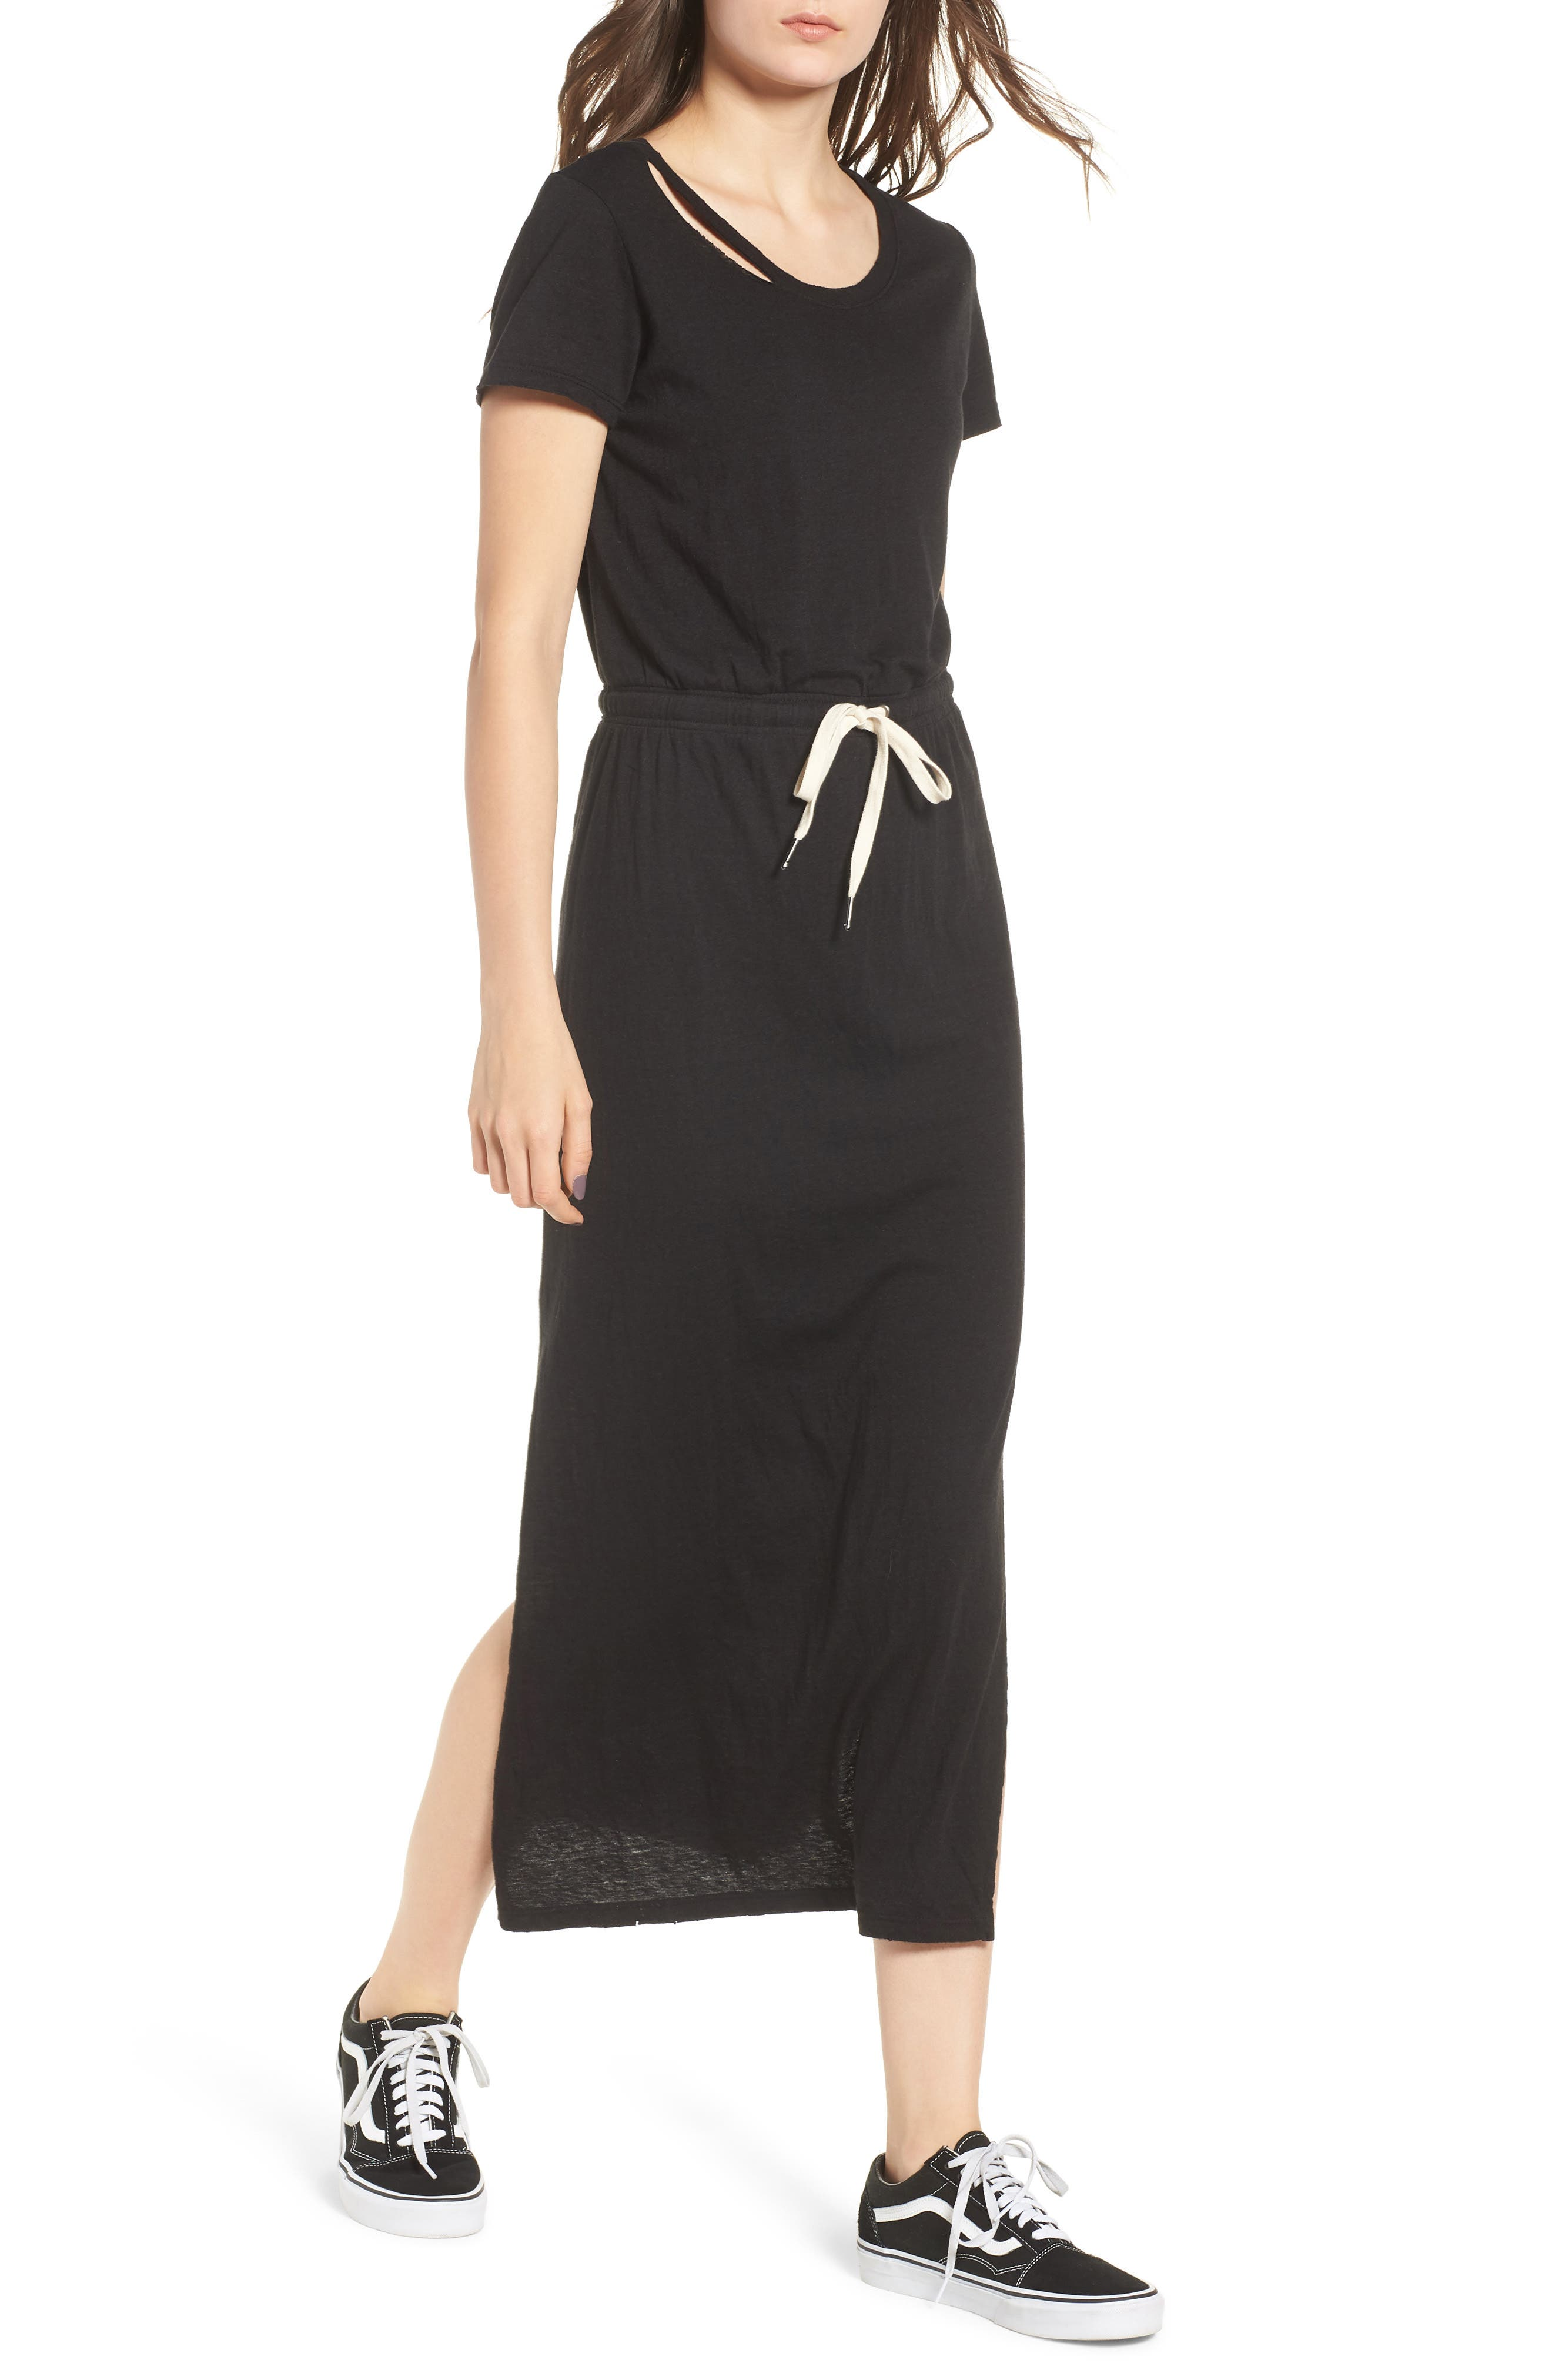 CLEARWATER MAXI DRESS